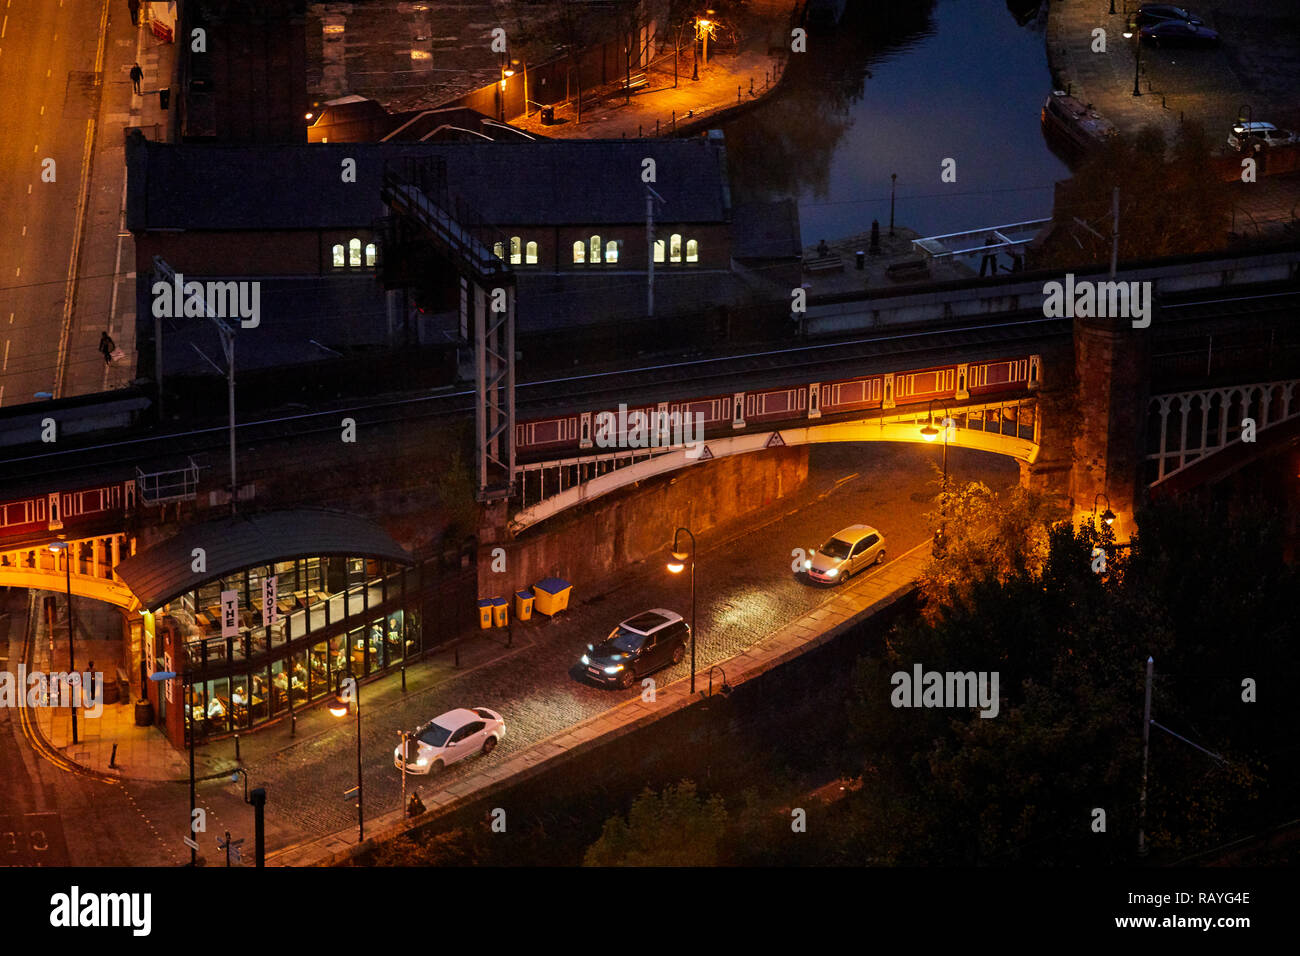 Manchester at night Cattle Street in Castlefield and Deansgate railway station bridge, with The Knott pub in the railway arches - Stock Image